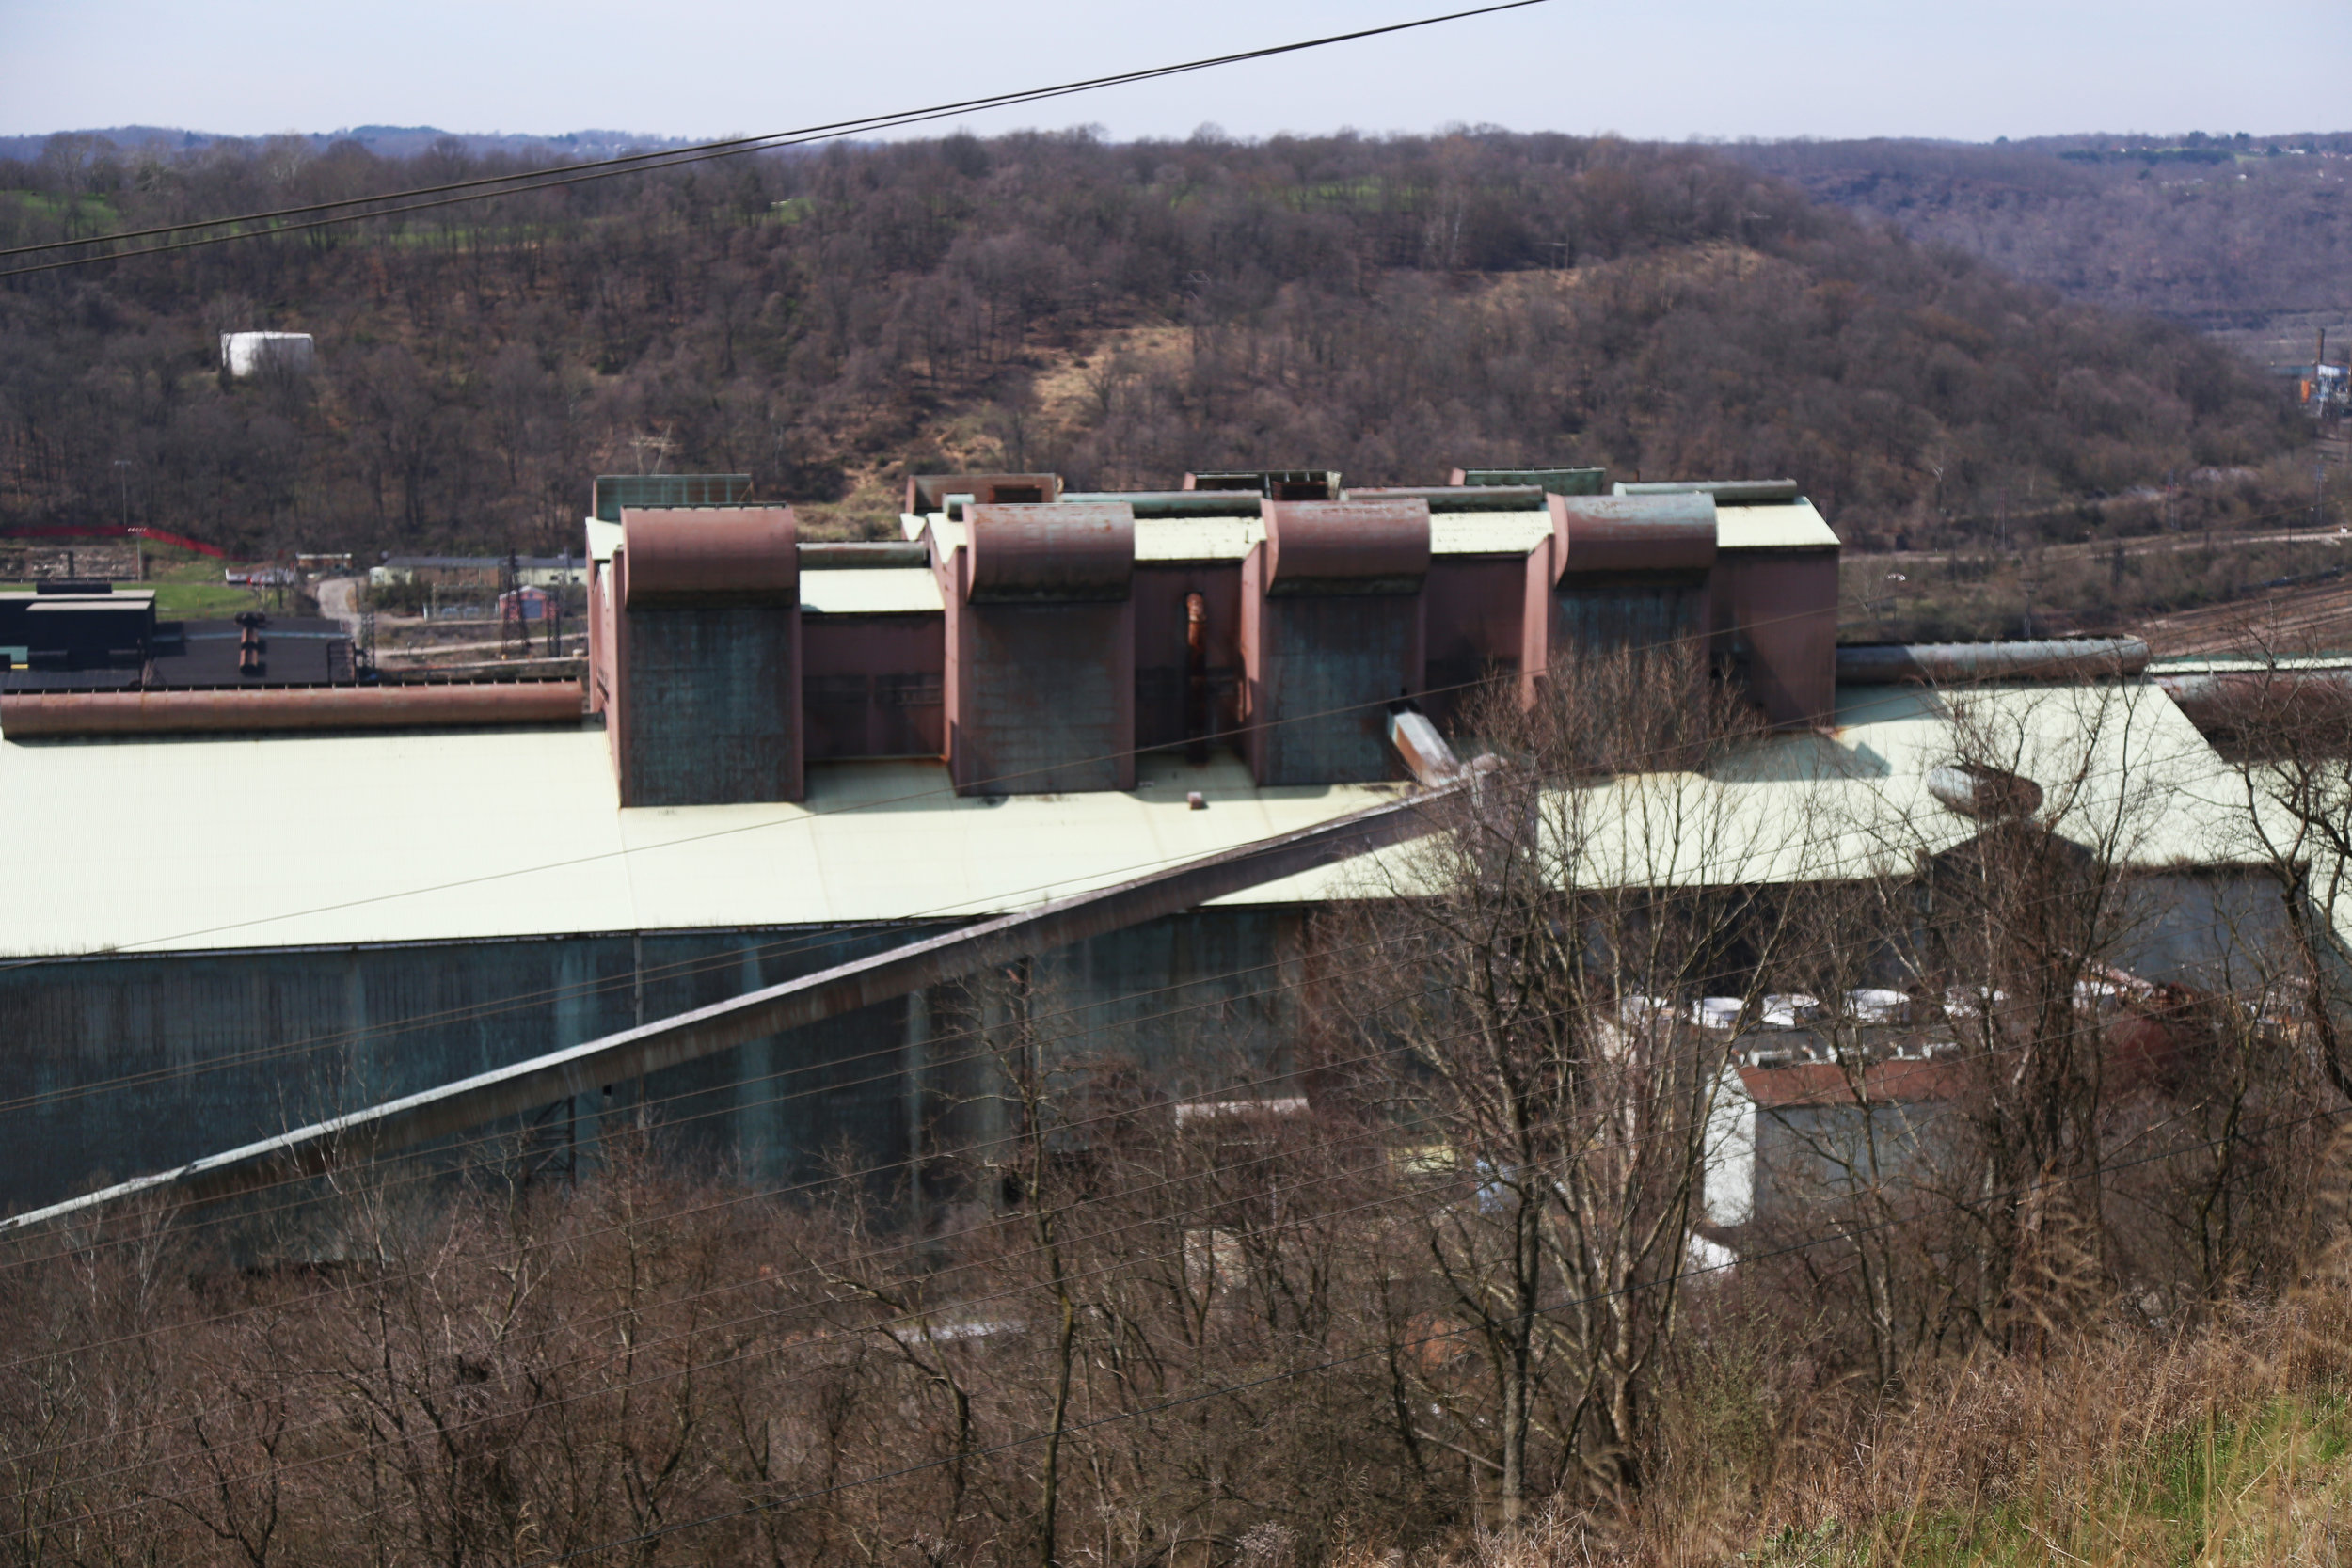 An aerial view of the closed part of the steel mill. Weirton Steel officially declared bankruptcy in 2003 and has been downsized several times since then.